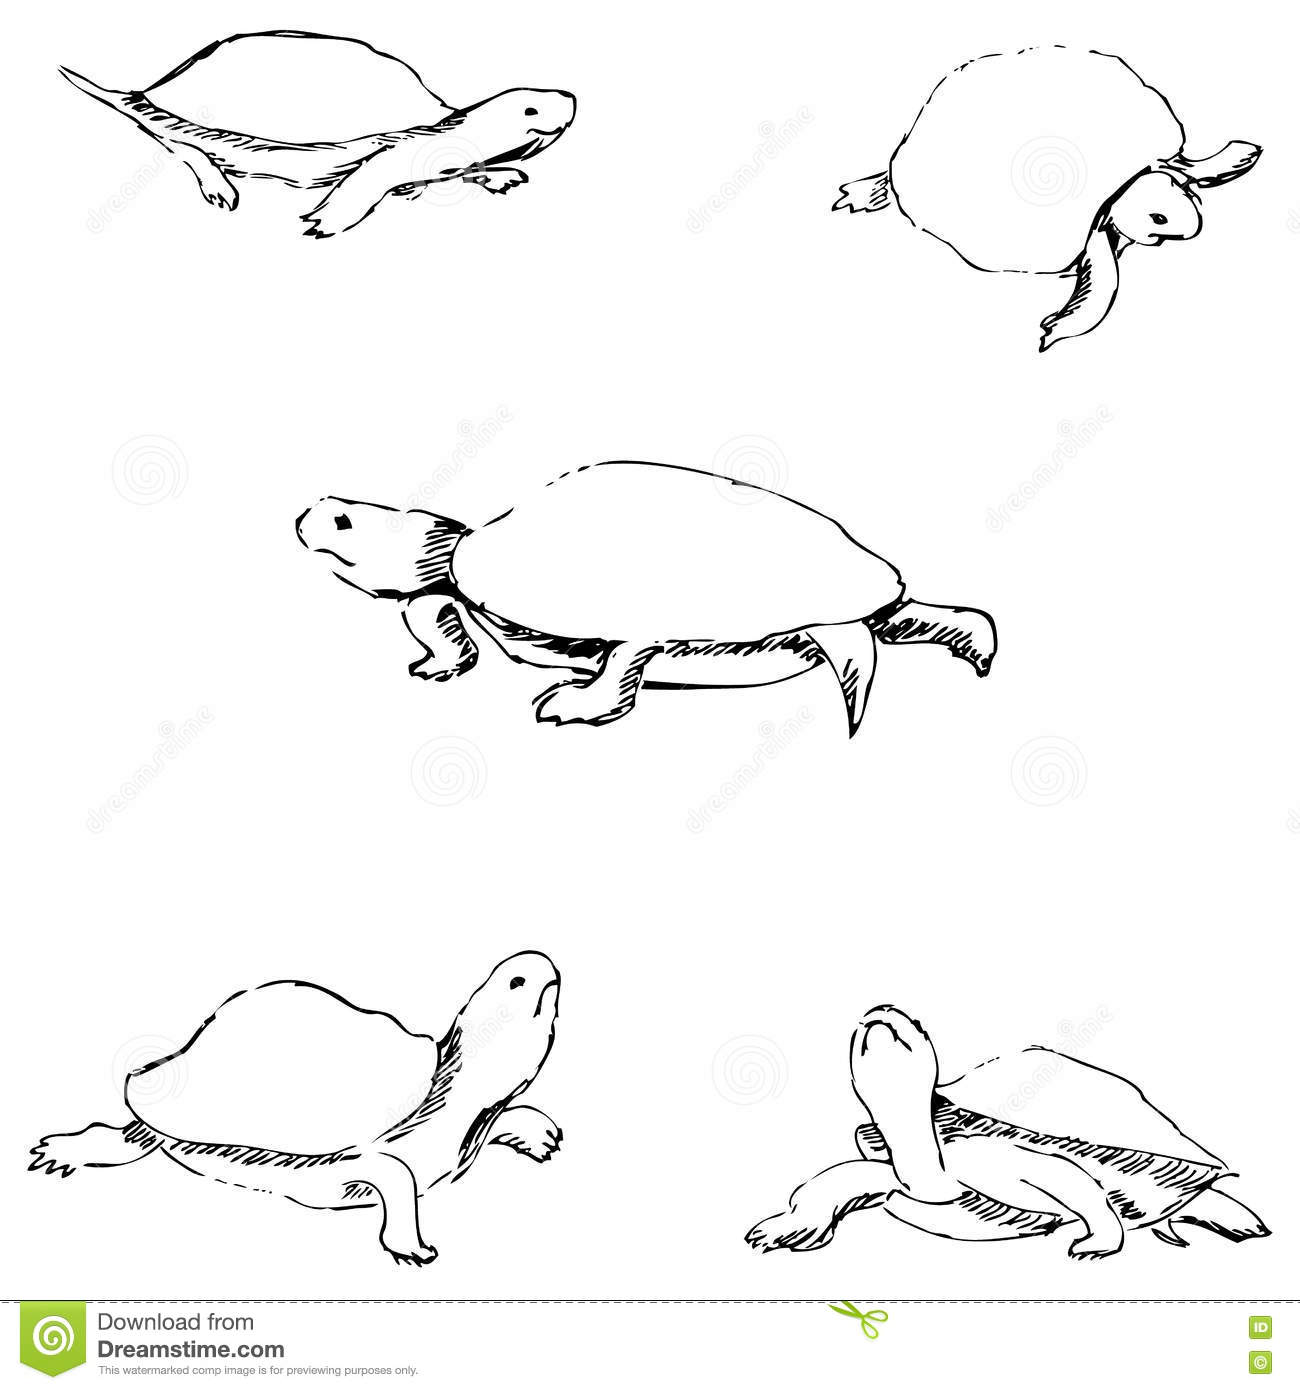 Turtles pencil sketch by hand stock vector illustration of